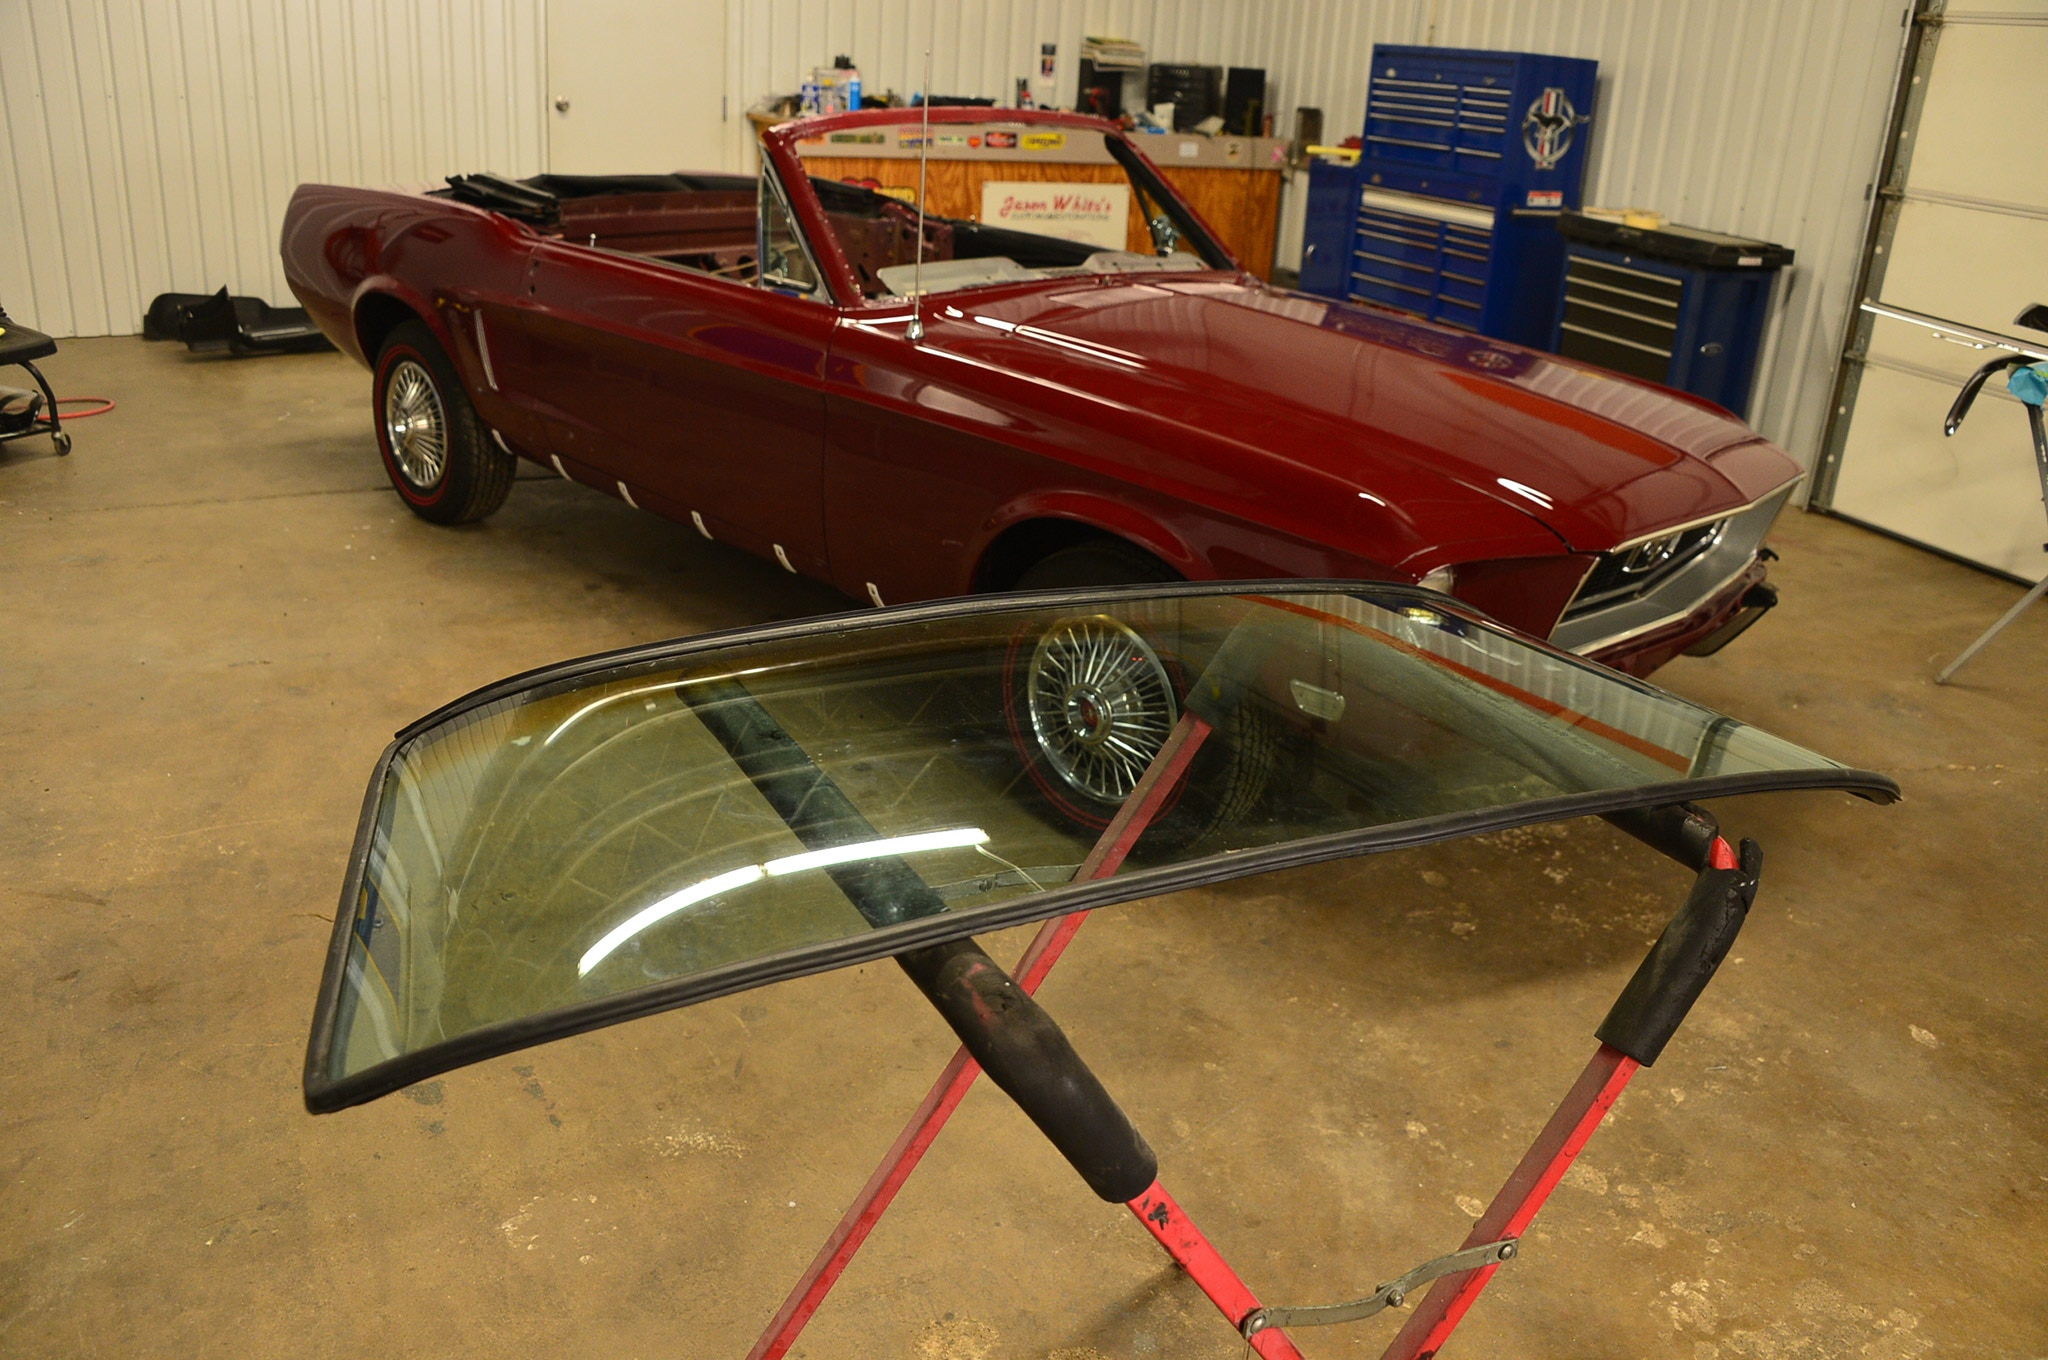 1968 Ford Mustang Convertible Project Windshield Install 01 Replacement